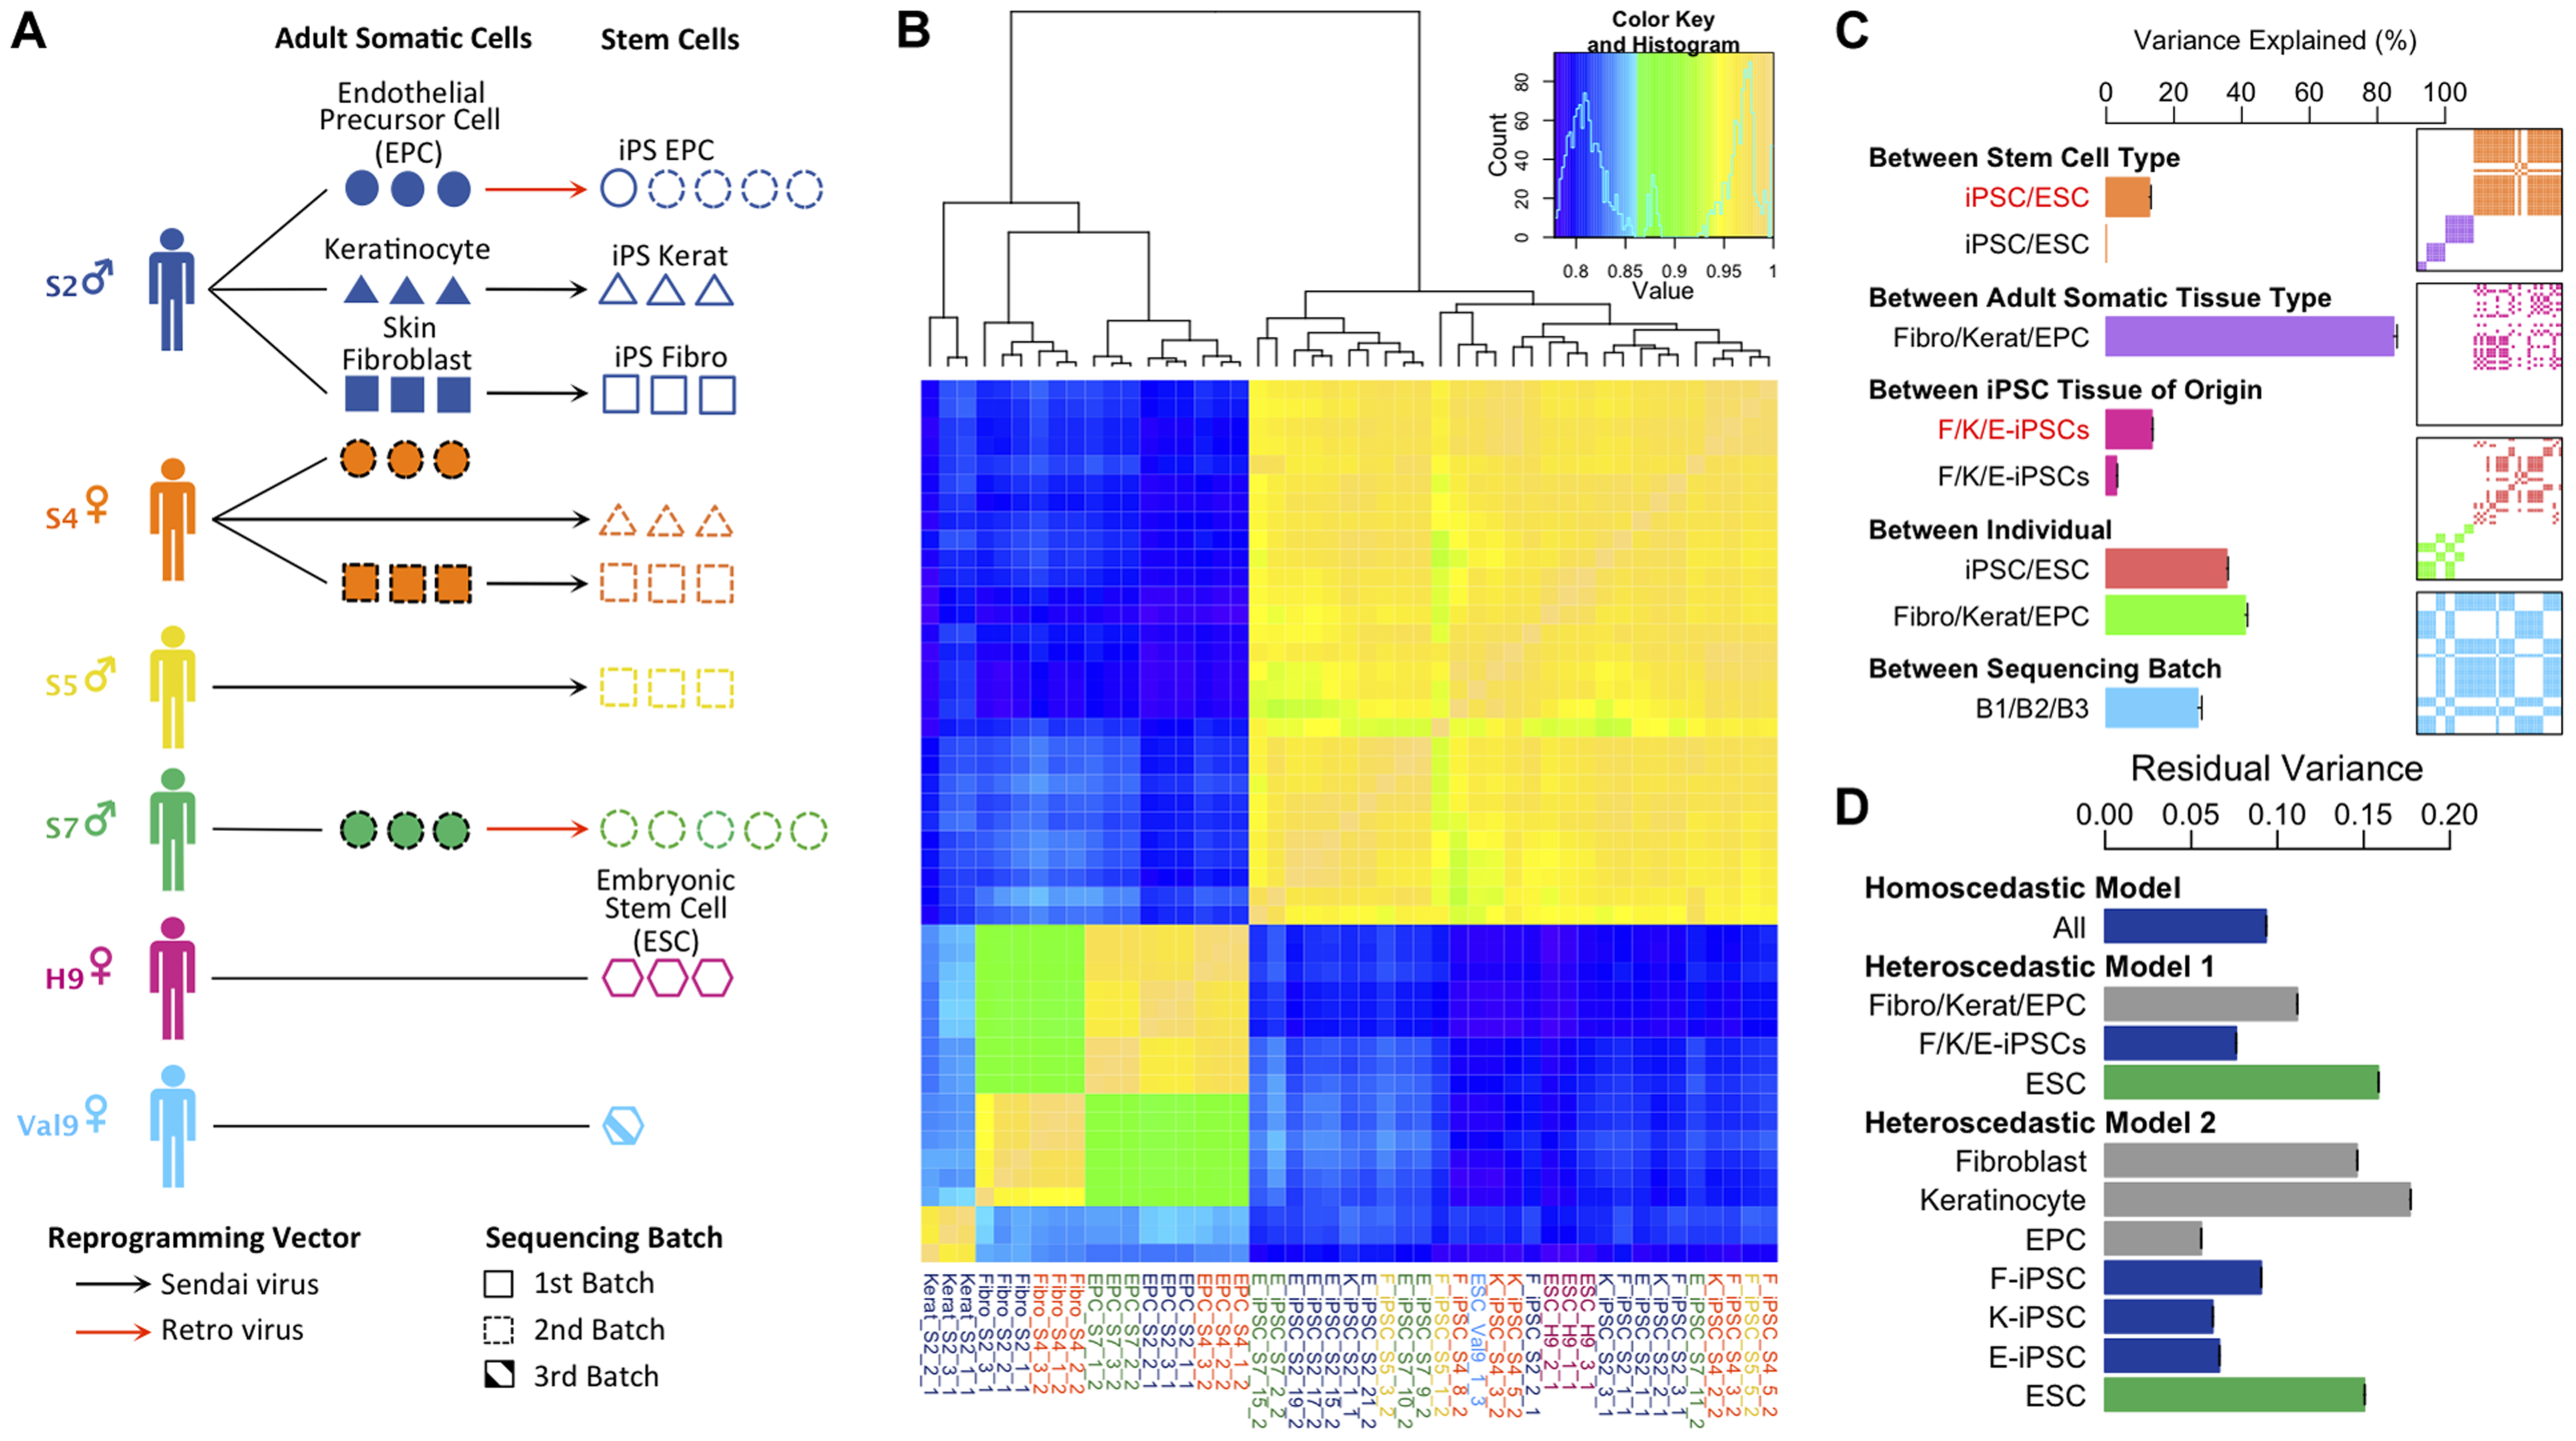 Experimental design and variance components analysis of transcription in iPSCs, somatic progenitors, H9 and Val9 embryonic stem cells.